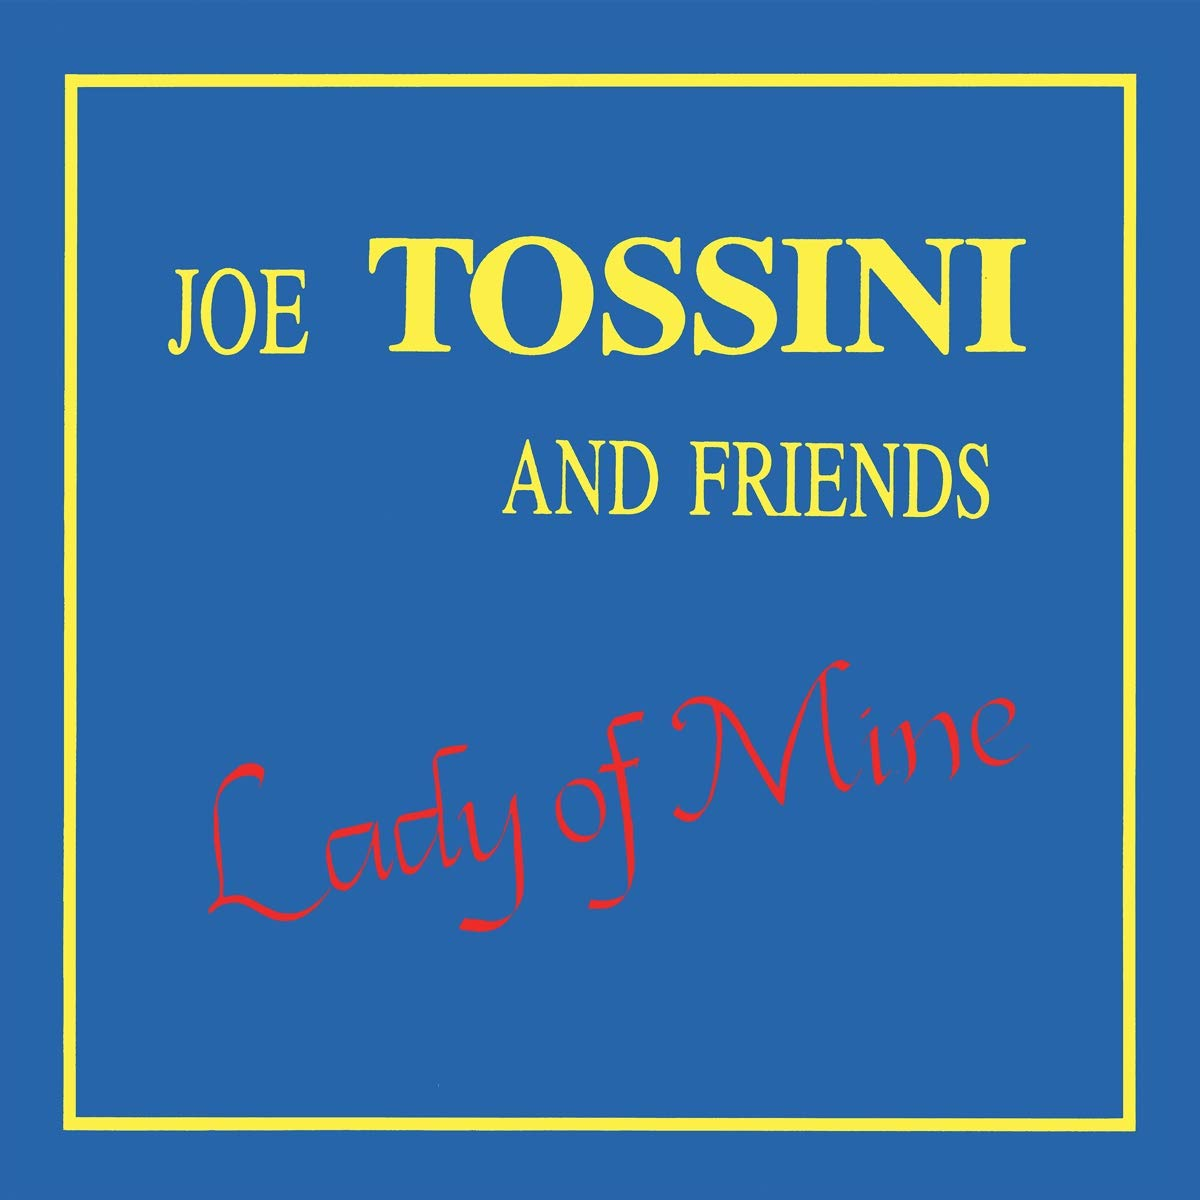 LADY OF MINE / Joe Tossini and friendsのジャケット